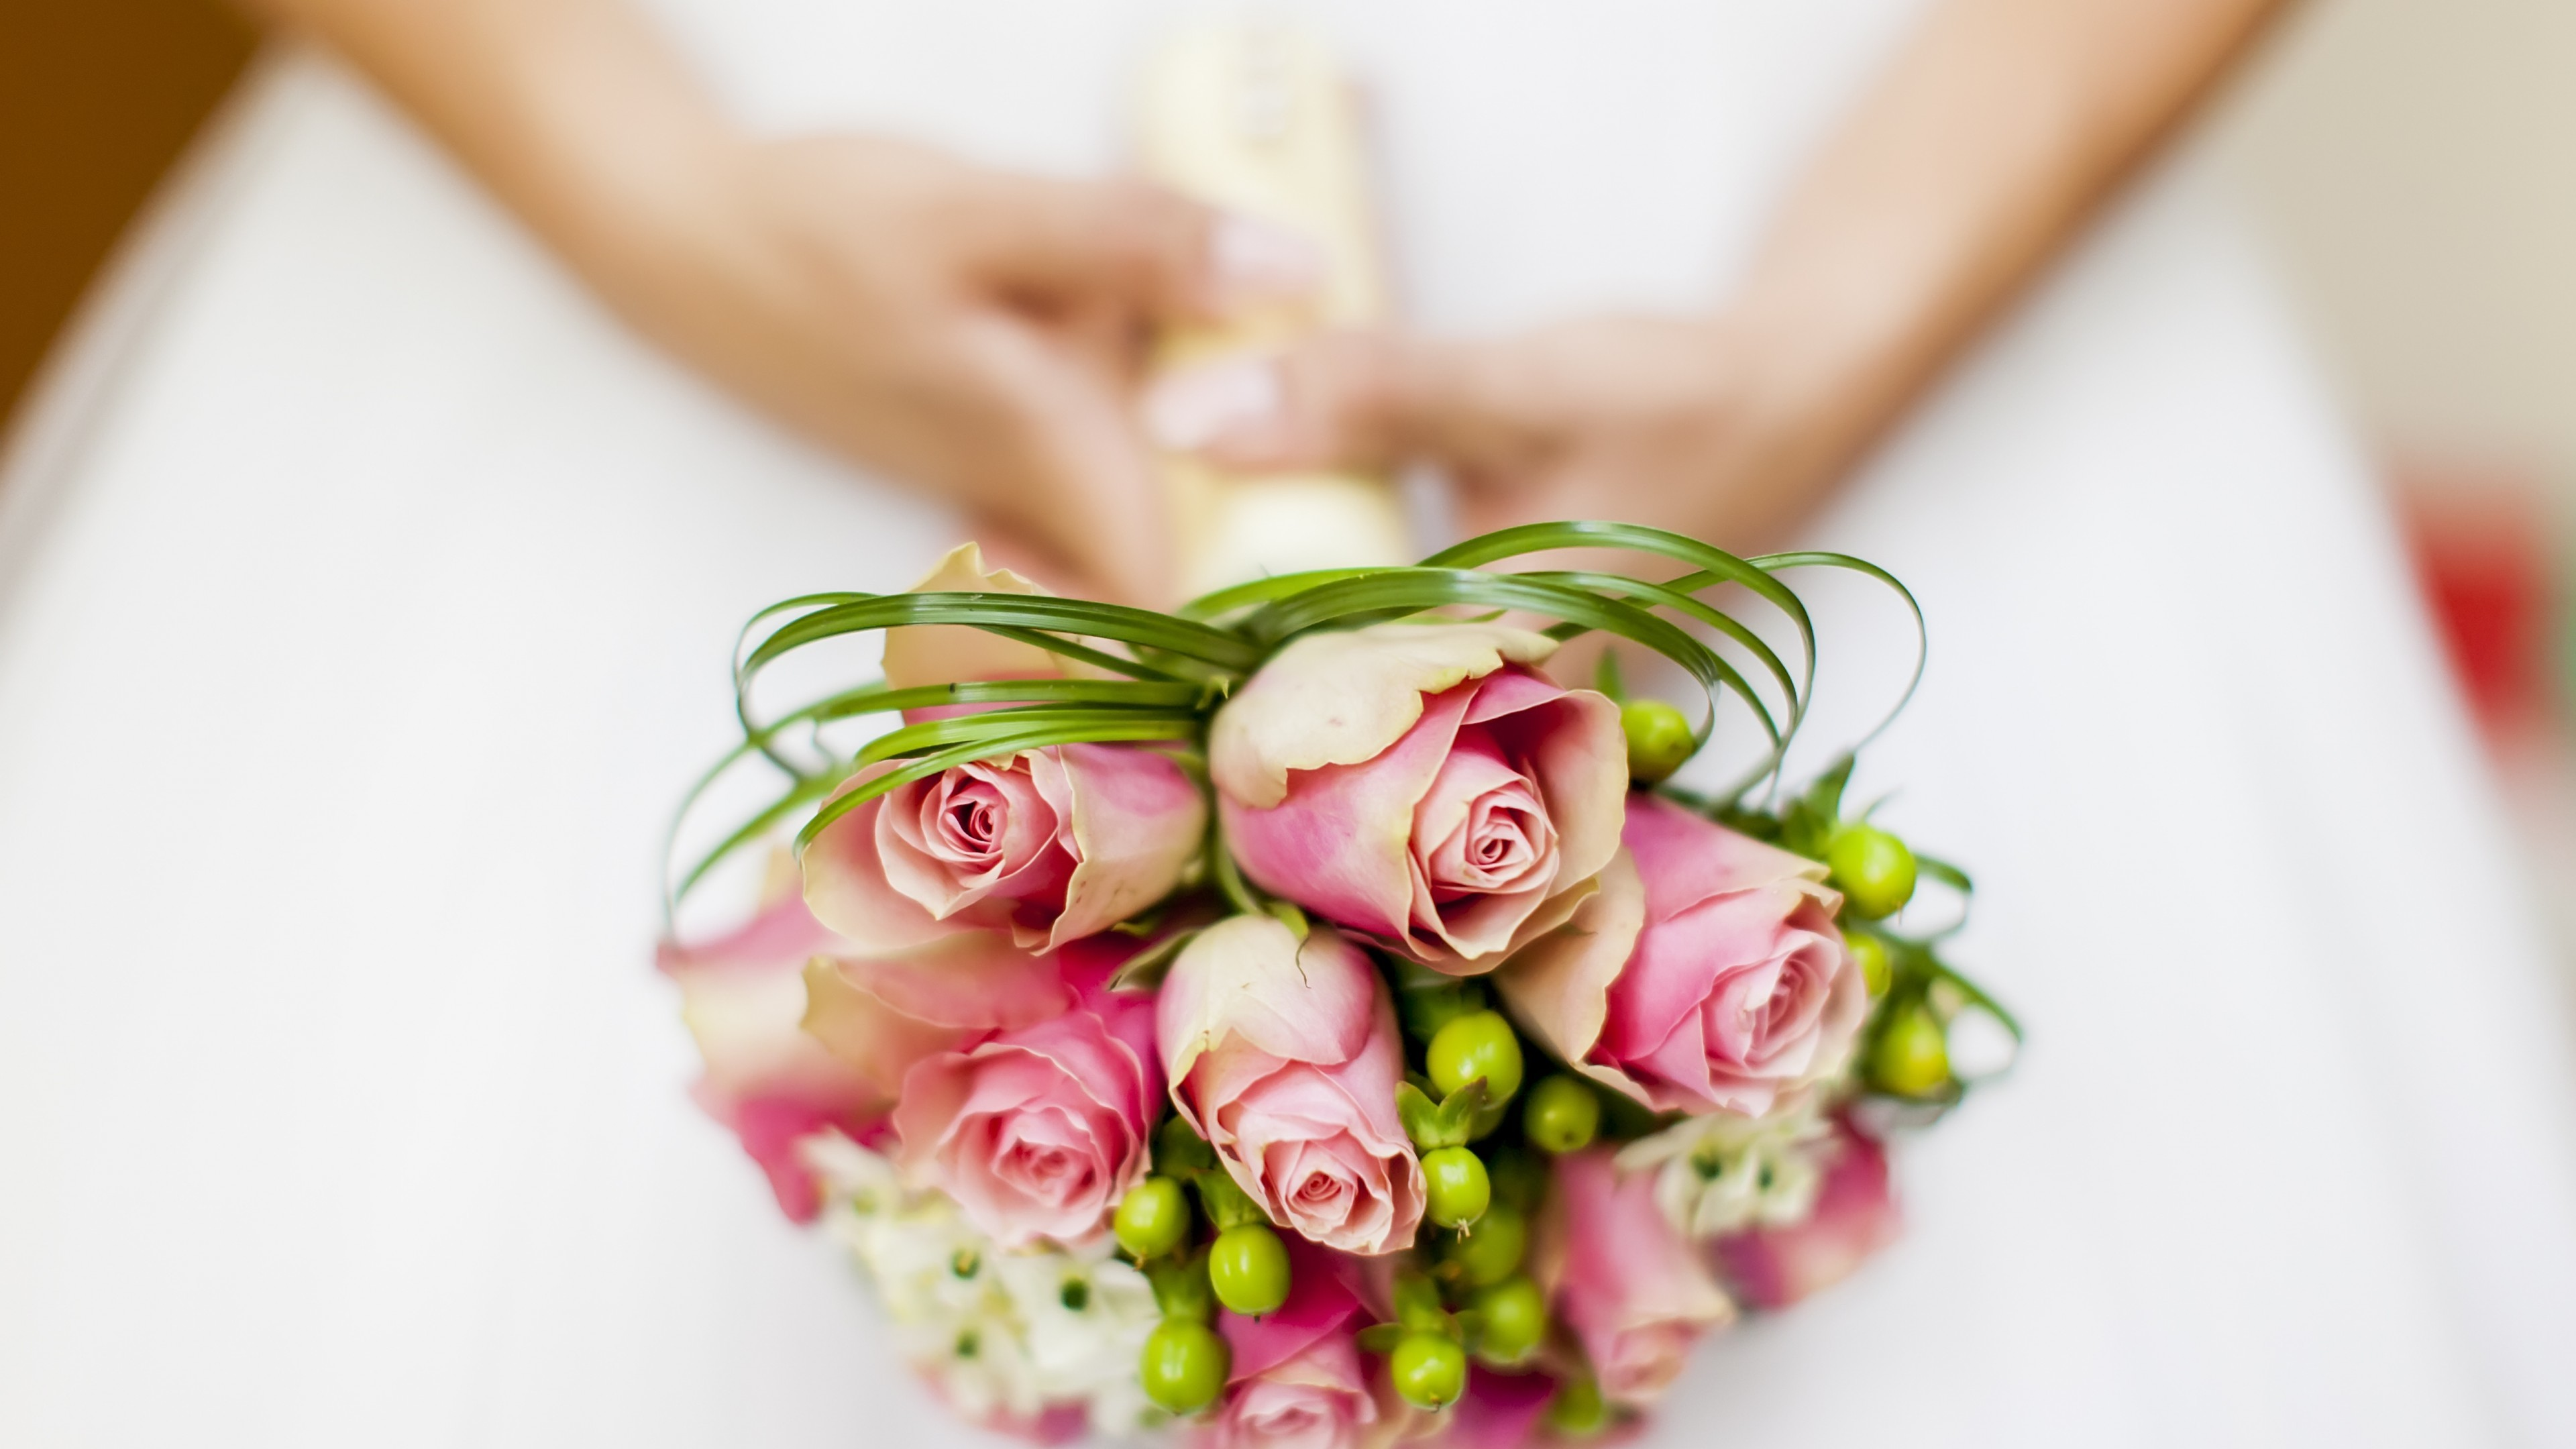 Res: 3840x2160, Flowers / Wedding Flowers Wallpaper